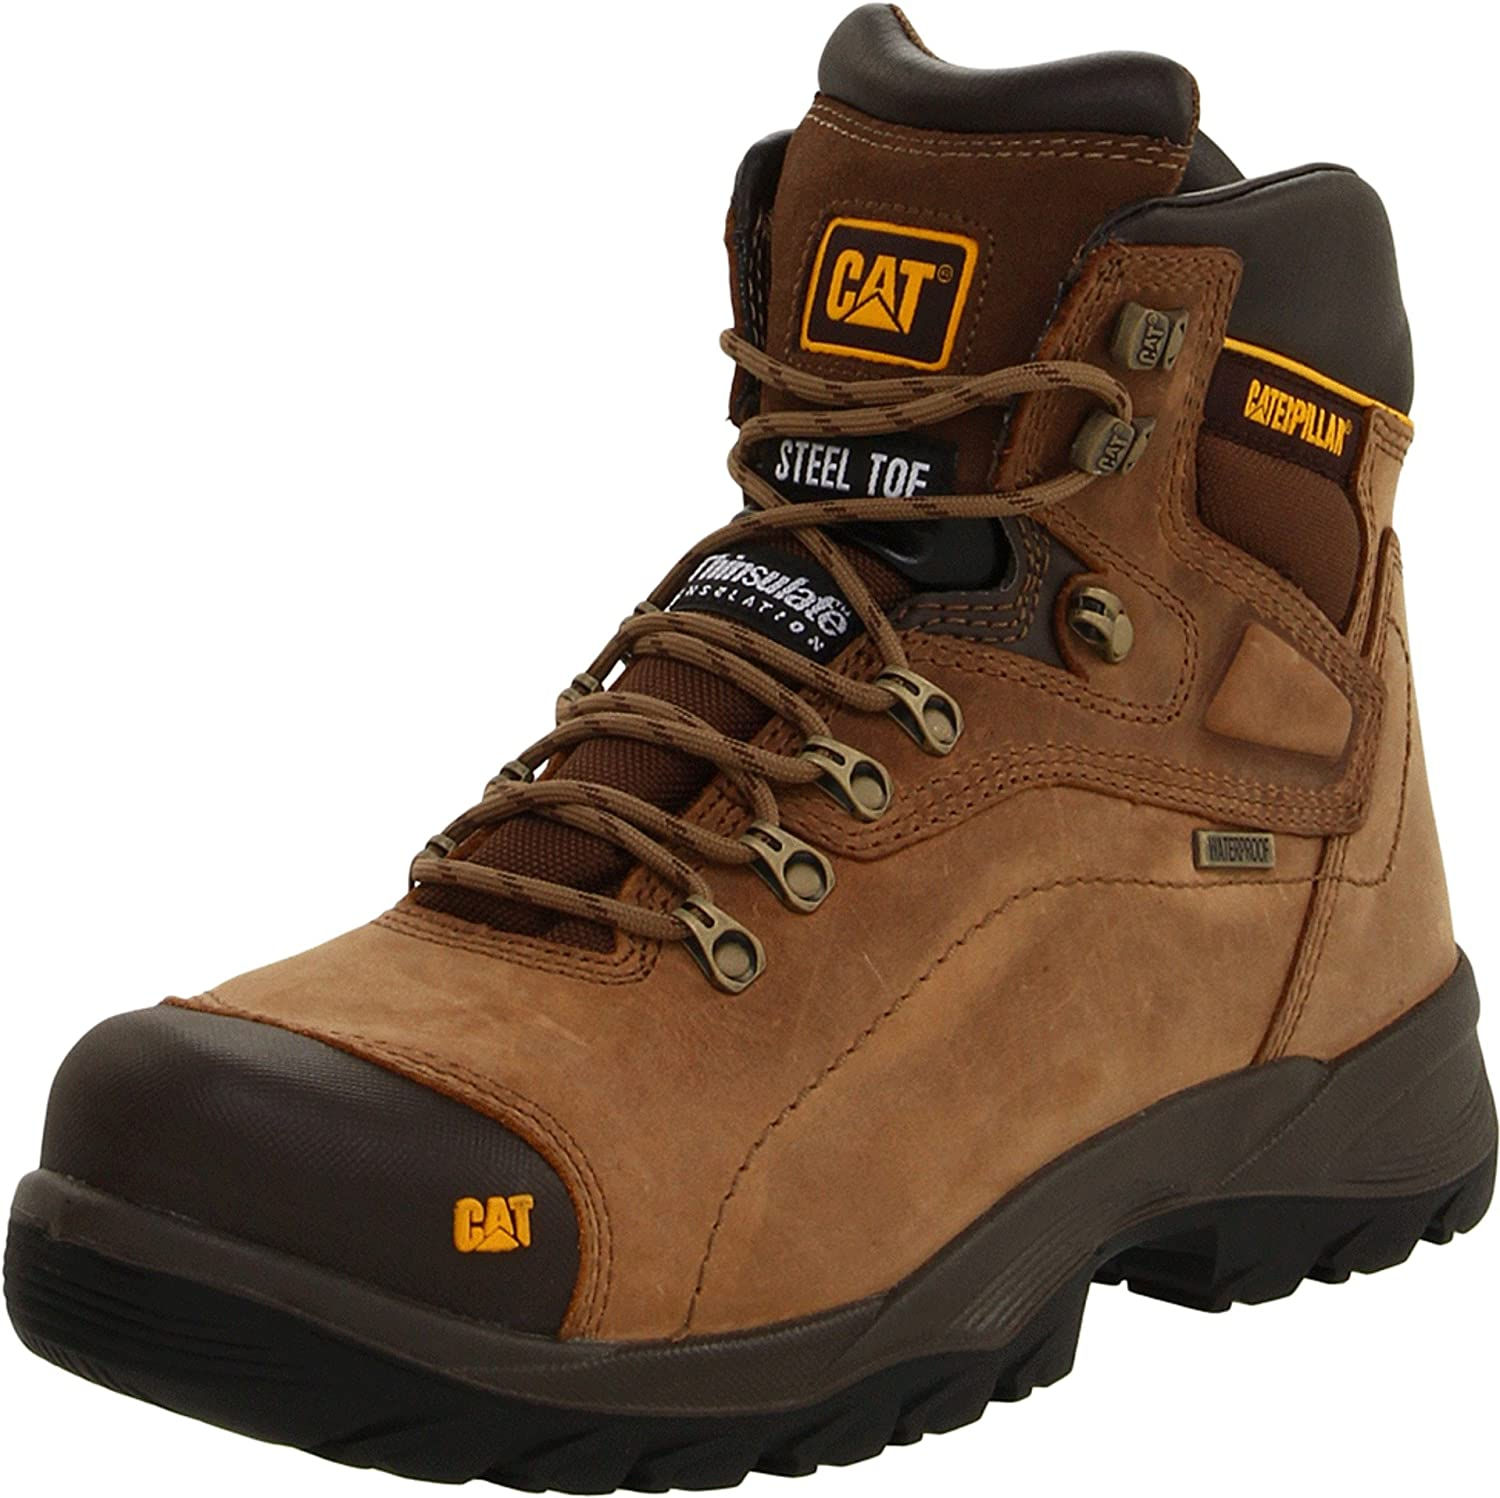 Caterpillar Men's Diagnostic Waterproof Steel-Toe Work Boot Caterpillar Footwear 89940